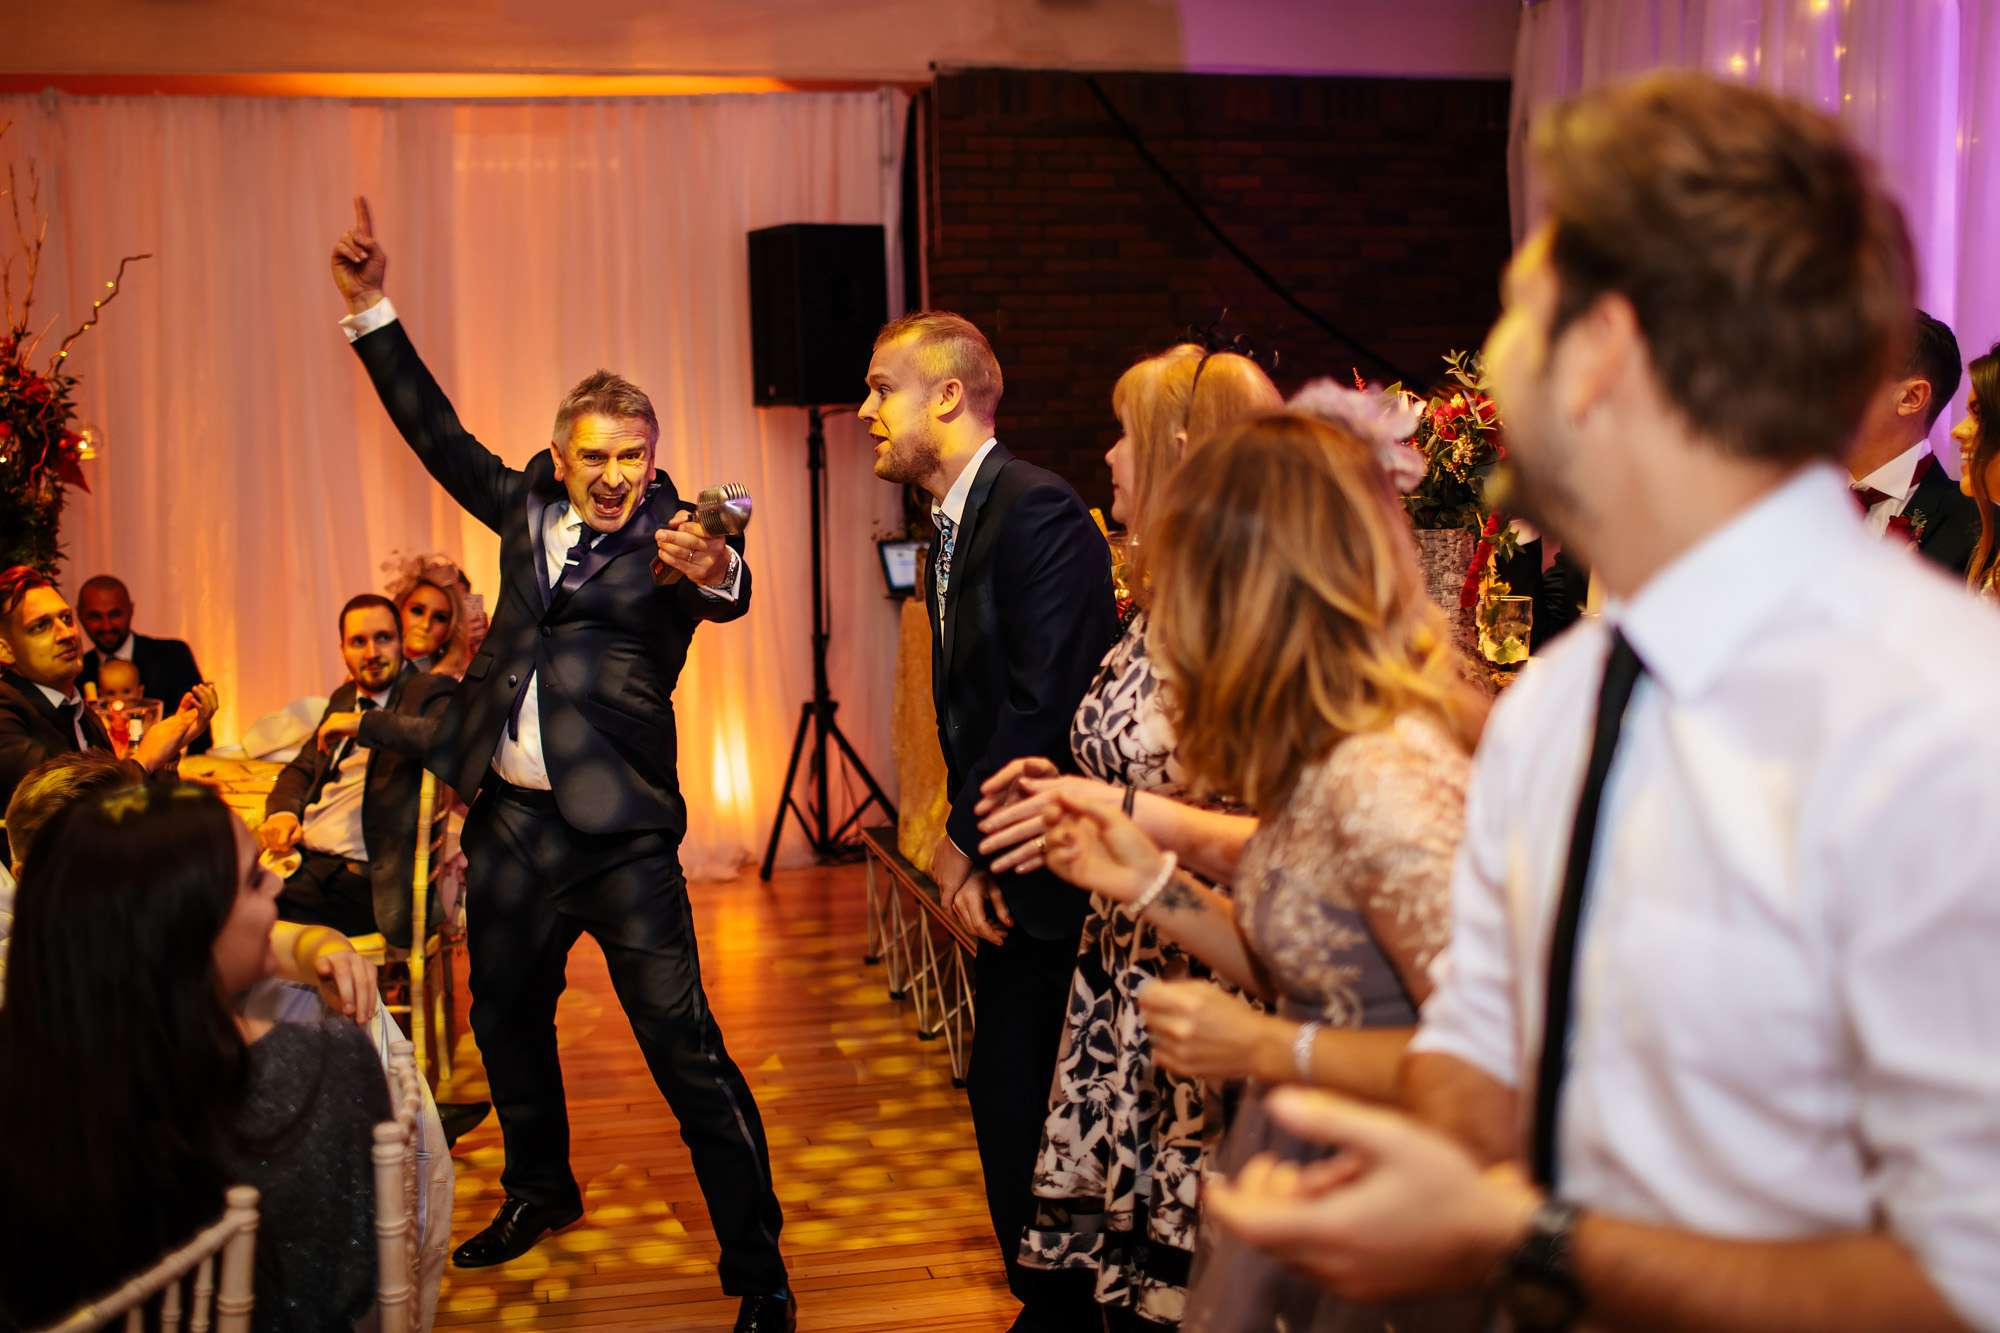 Wedding guests dancing at their tables in Blackpool